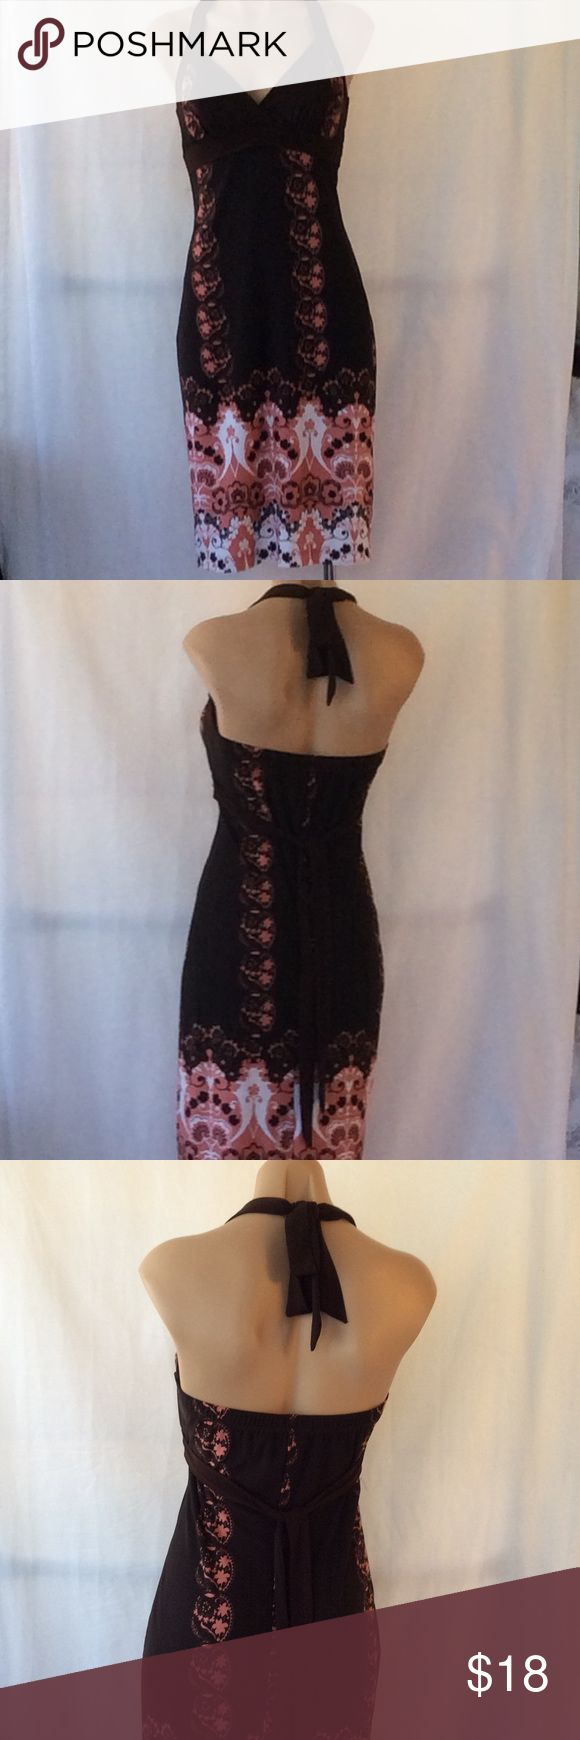 Backless brown/pink summer halter top dress So cute! Backless halter top dress with slight padding on top, with belt strings that can be tied around your neck and waist. Comfortable and fun for a day at the beach or night out. Please see photos for approximate flat lay measurements. Thank you for checking! Speechless Dresses